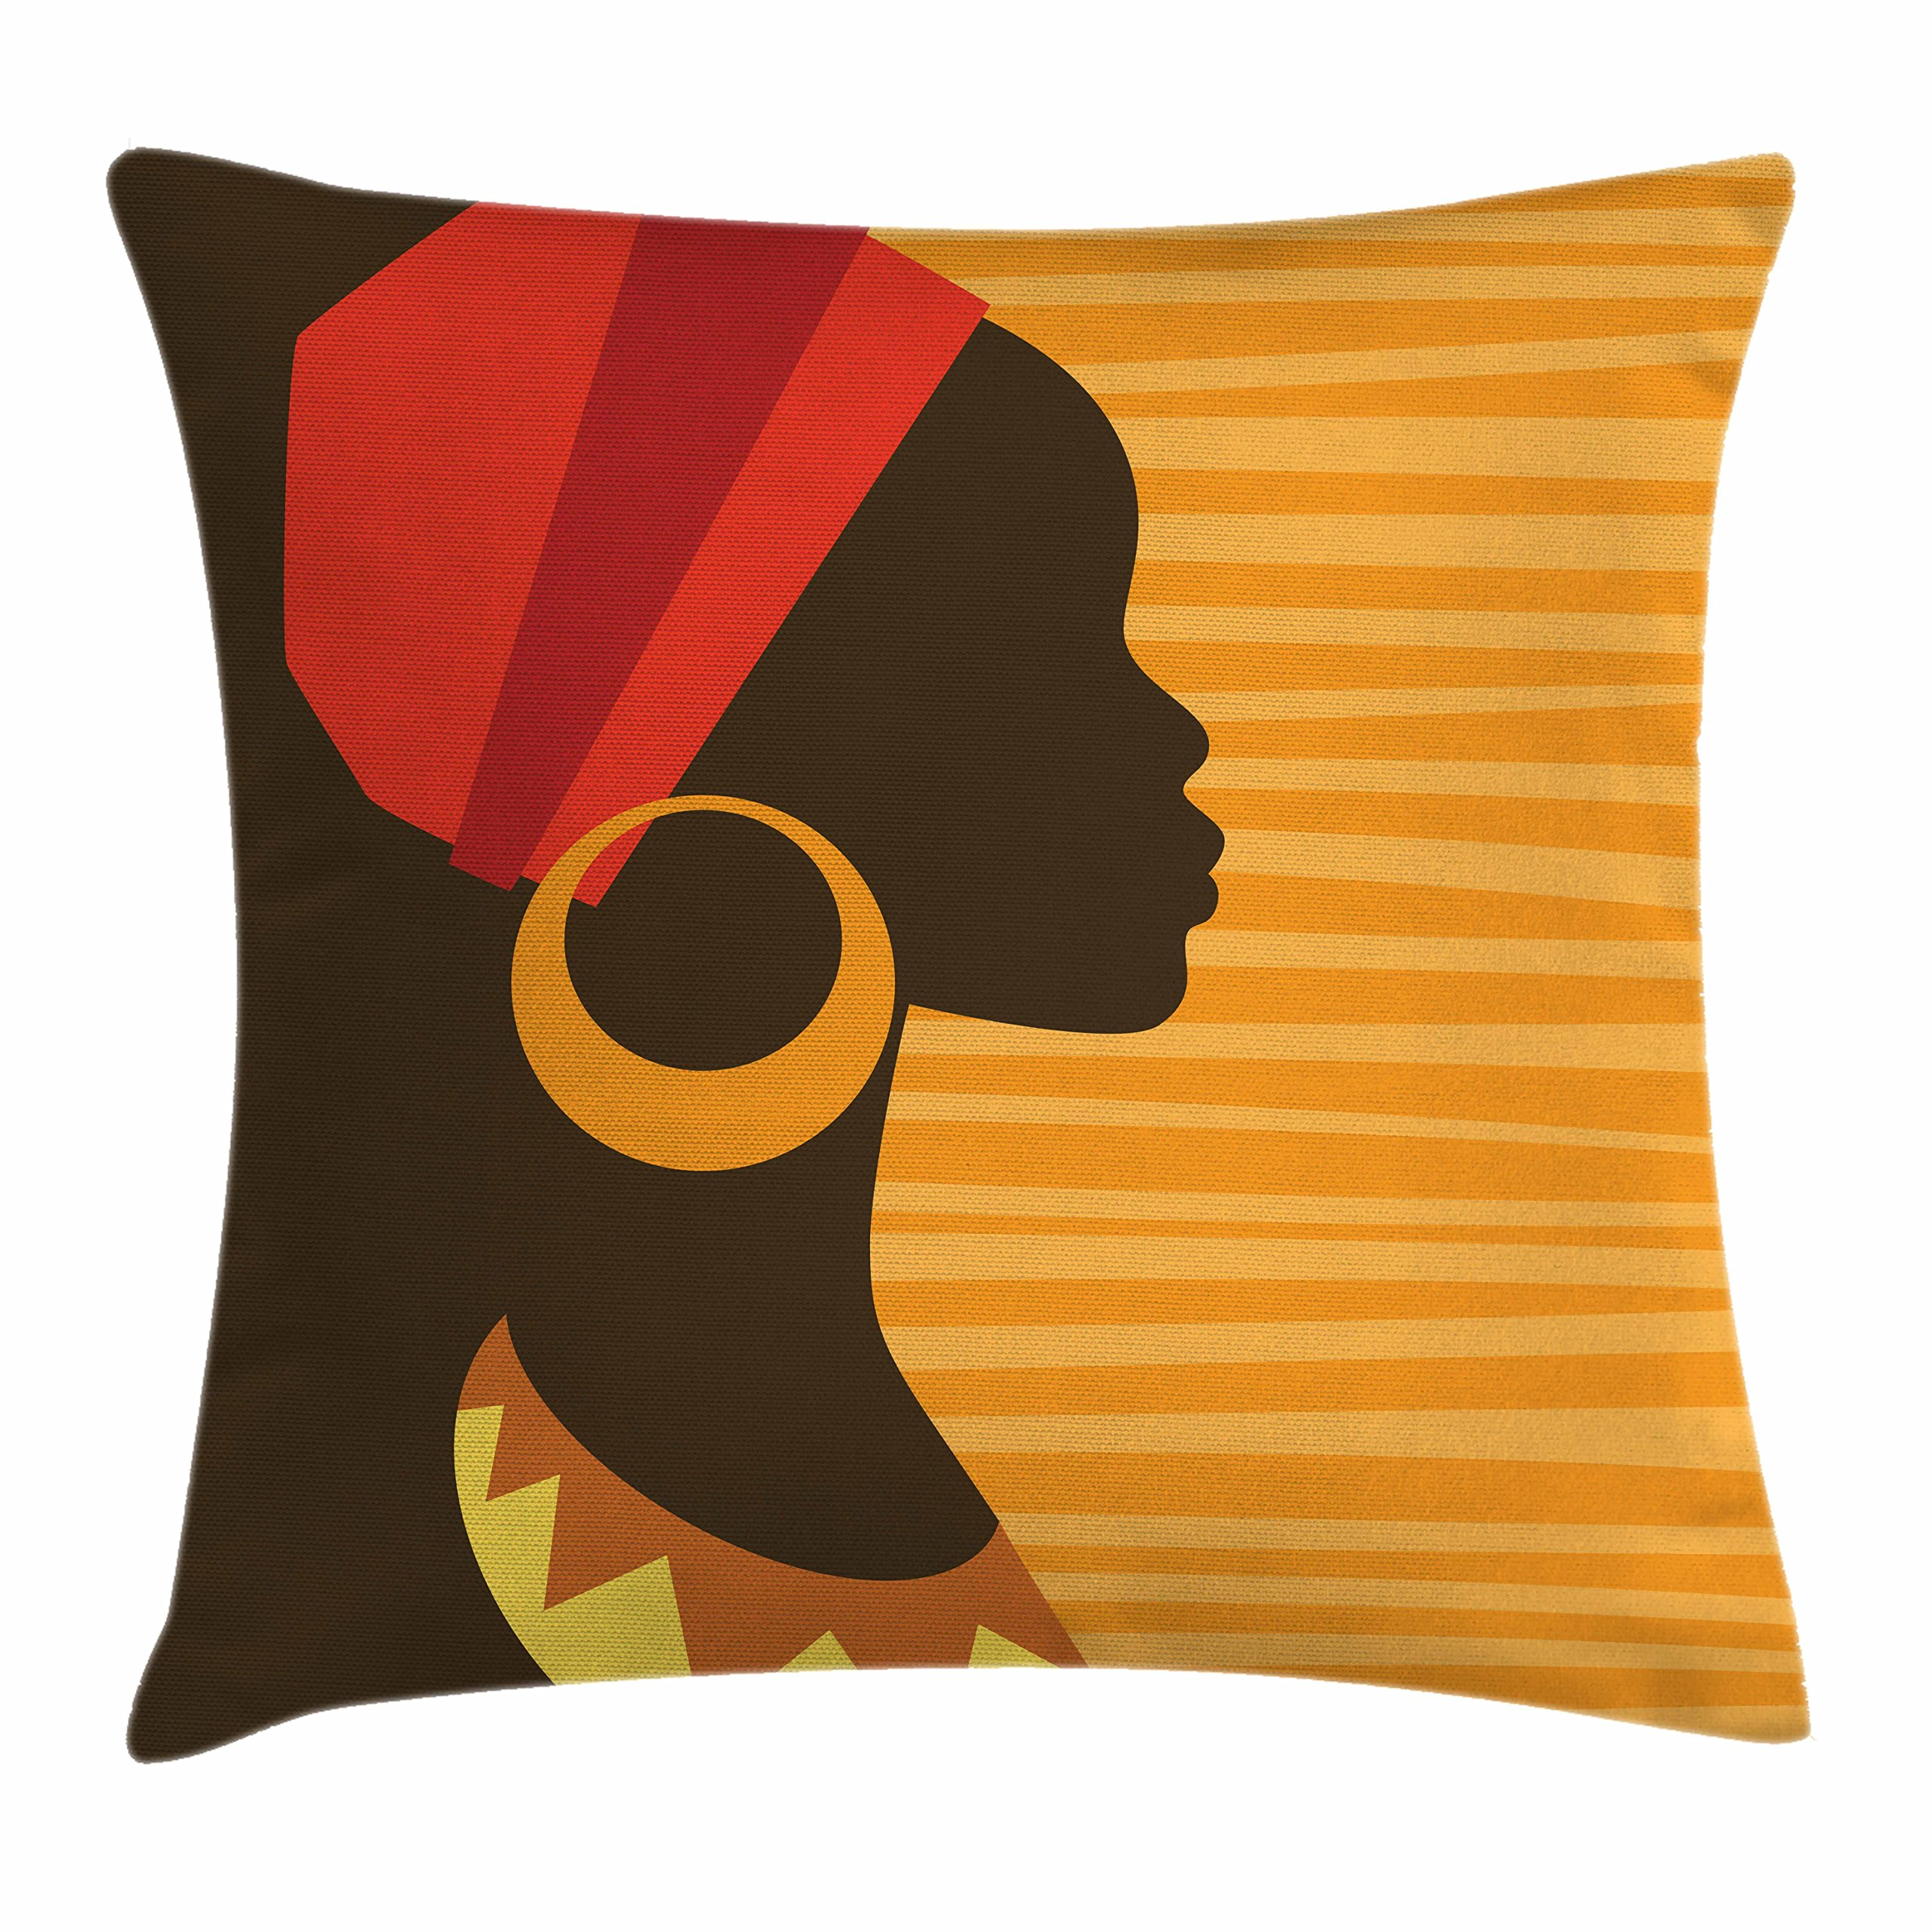 Ambesonne Afro Decor Throw Pillow Cushion Cover, Girl Profile Silhouette with Earrings Grace and Elegance Icon Image, Decorative Square Accent Pillow Case, 20 X 20 Inches, Dark Brown Merigold